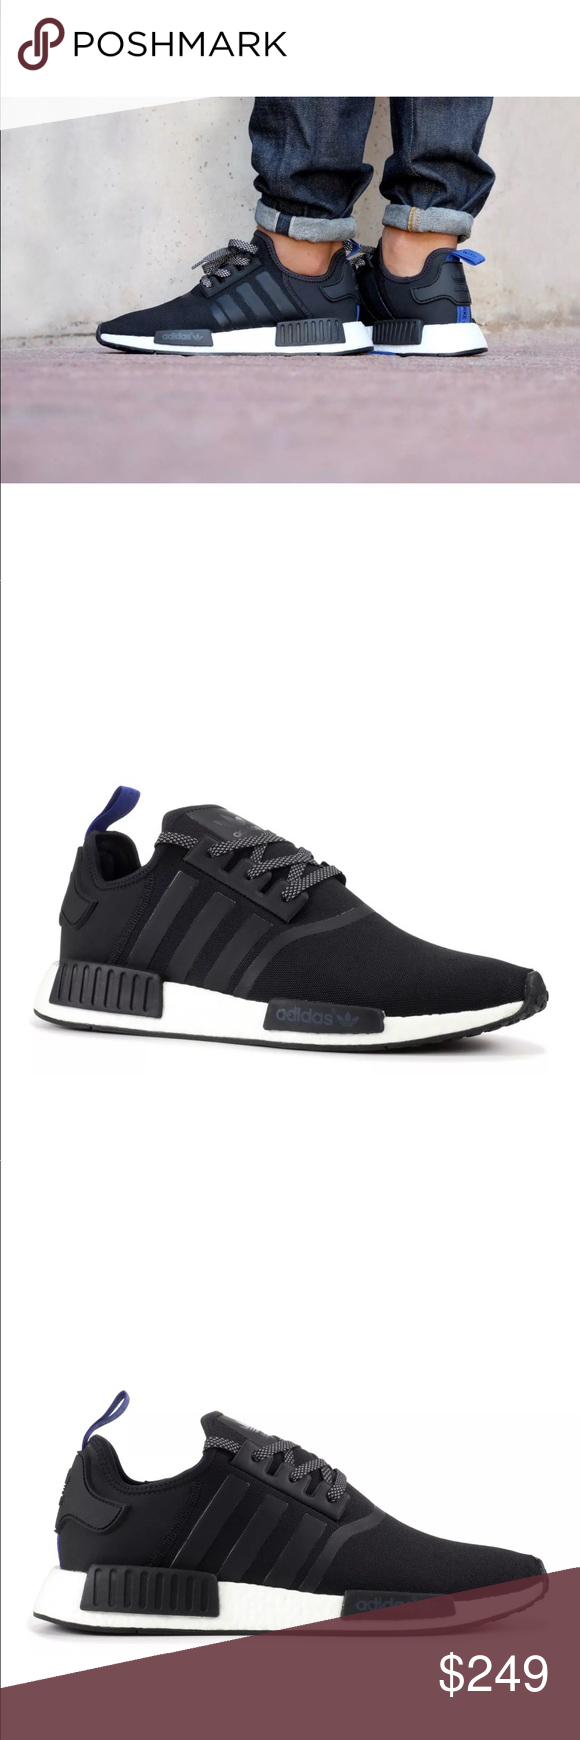 big sale 5ae33 9f664 Adidas Mens NMD R1 Blue Tab Black S31515 Sz 18 20 Adidas ...